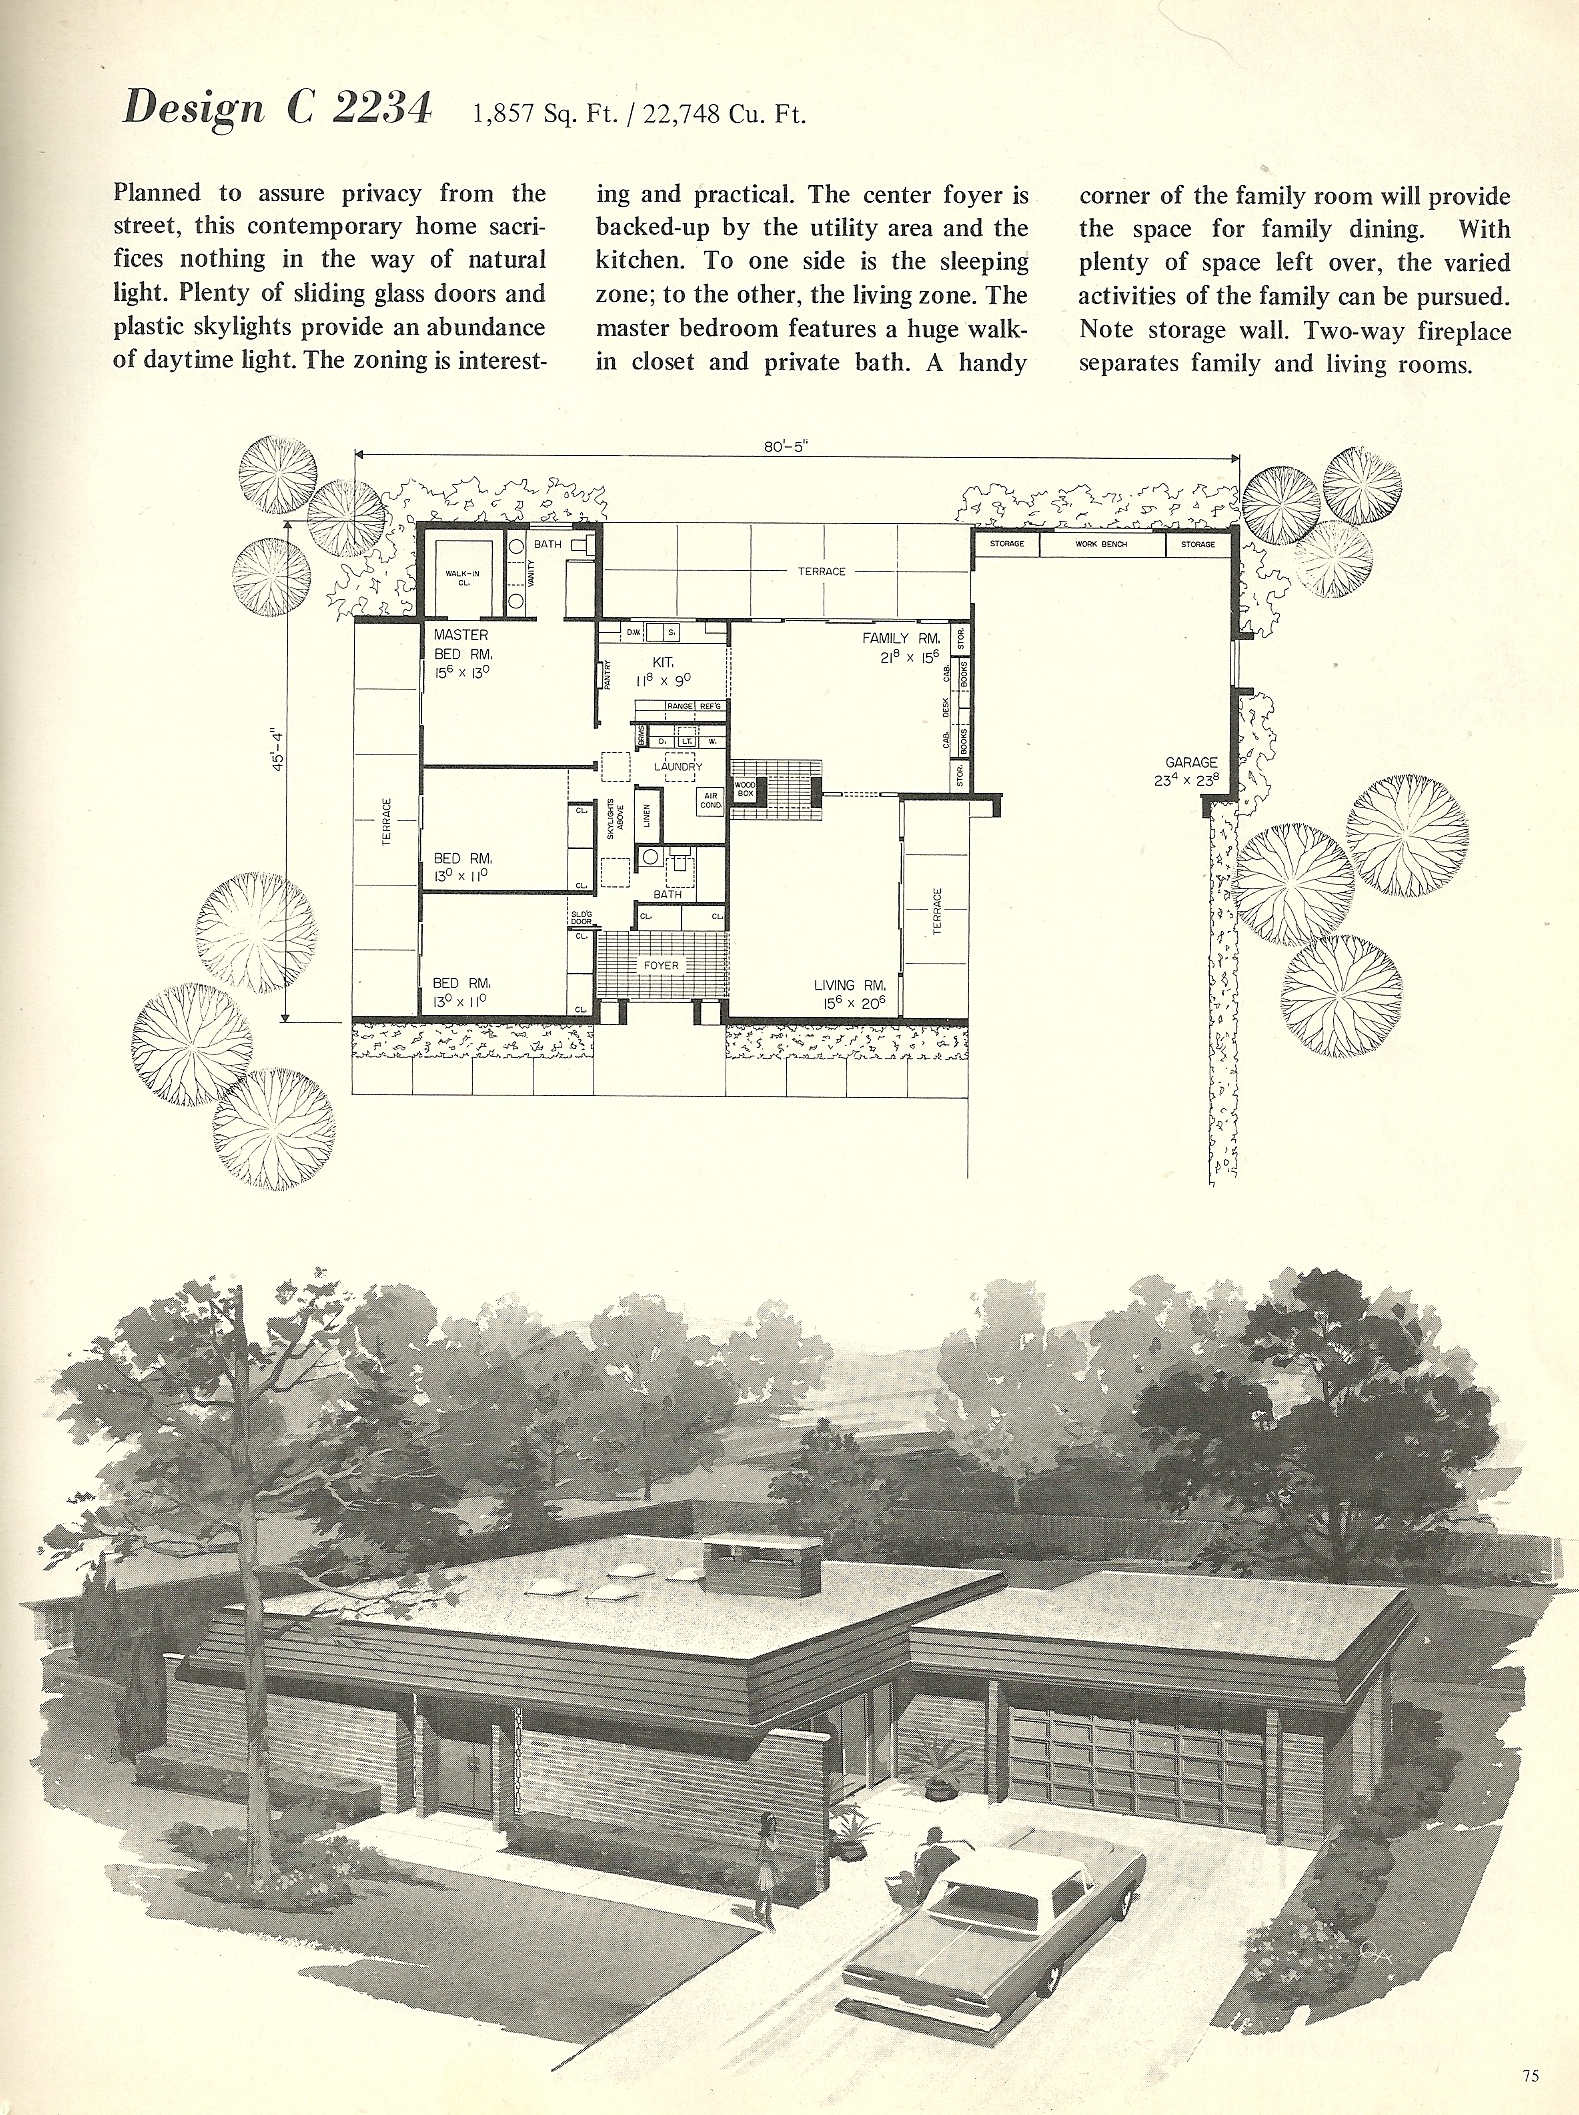 Vintage house plans 2234 antique alter ego Vintage home architecture